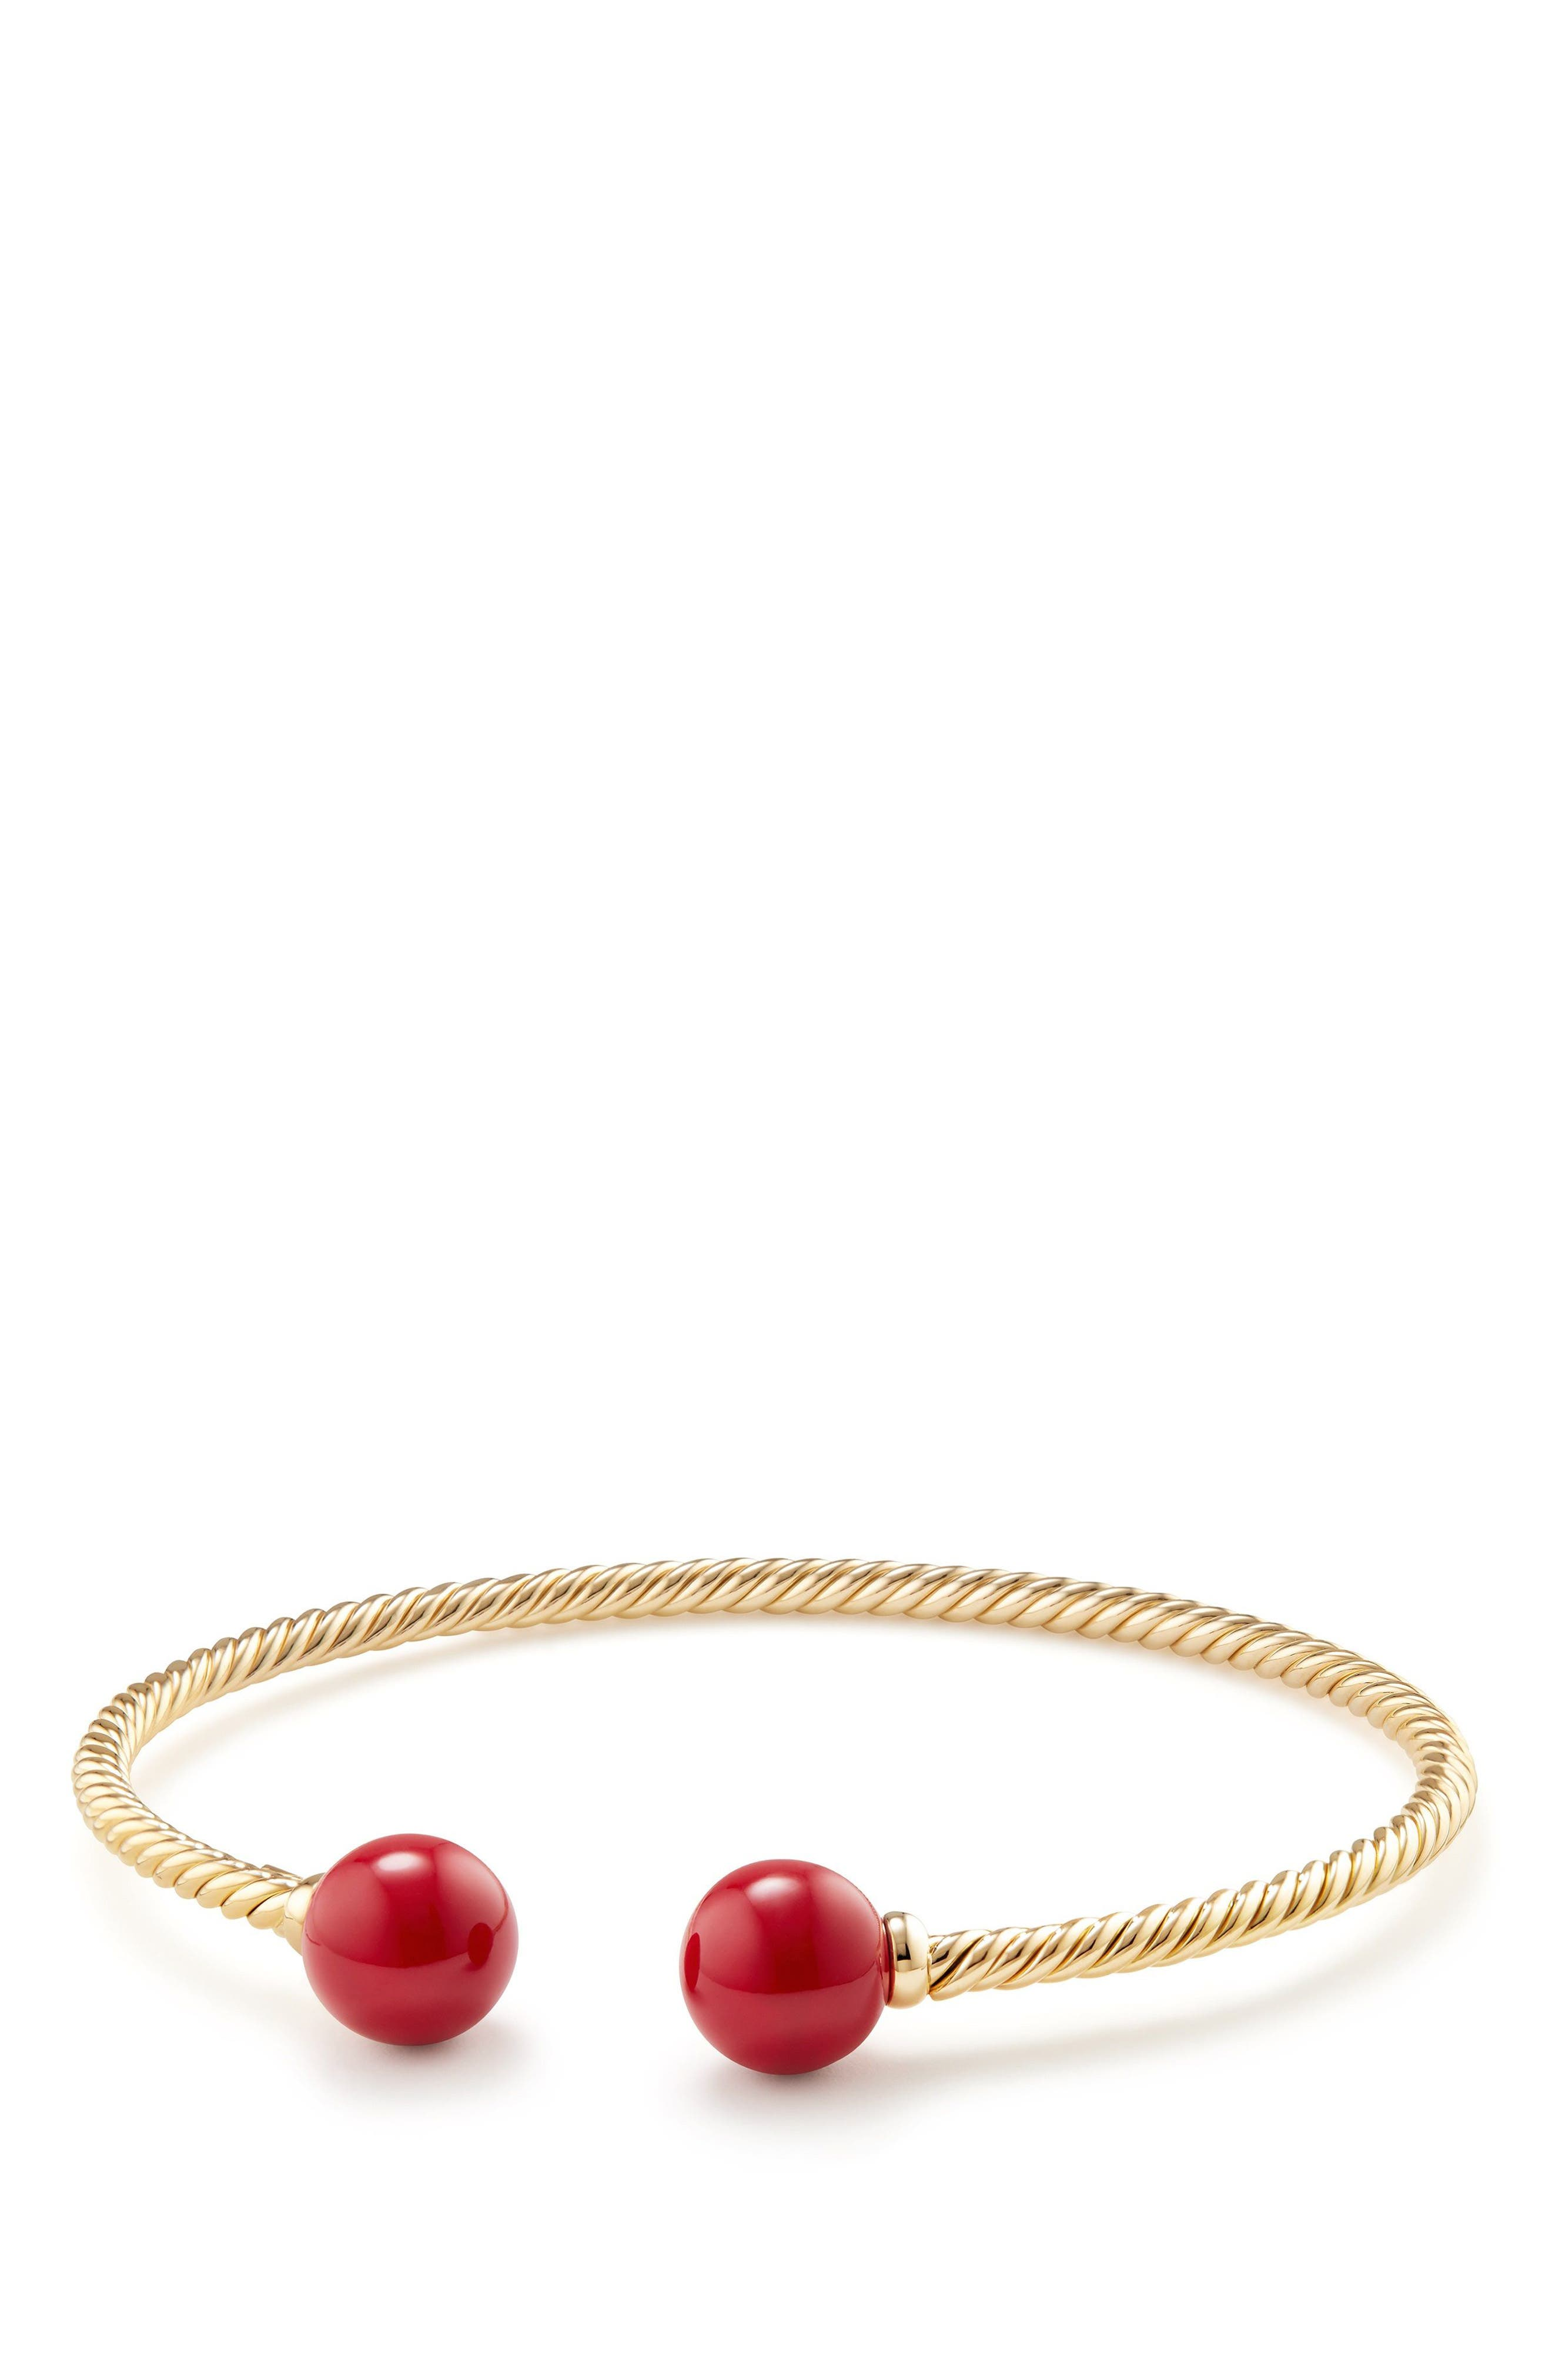 Solari Bead Bracelet with 18K Gold and Red Enamel,                             Main thumbnail 1, color,                             Yellow Gold/ Red